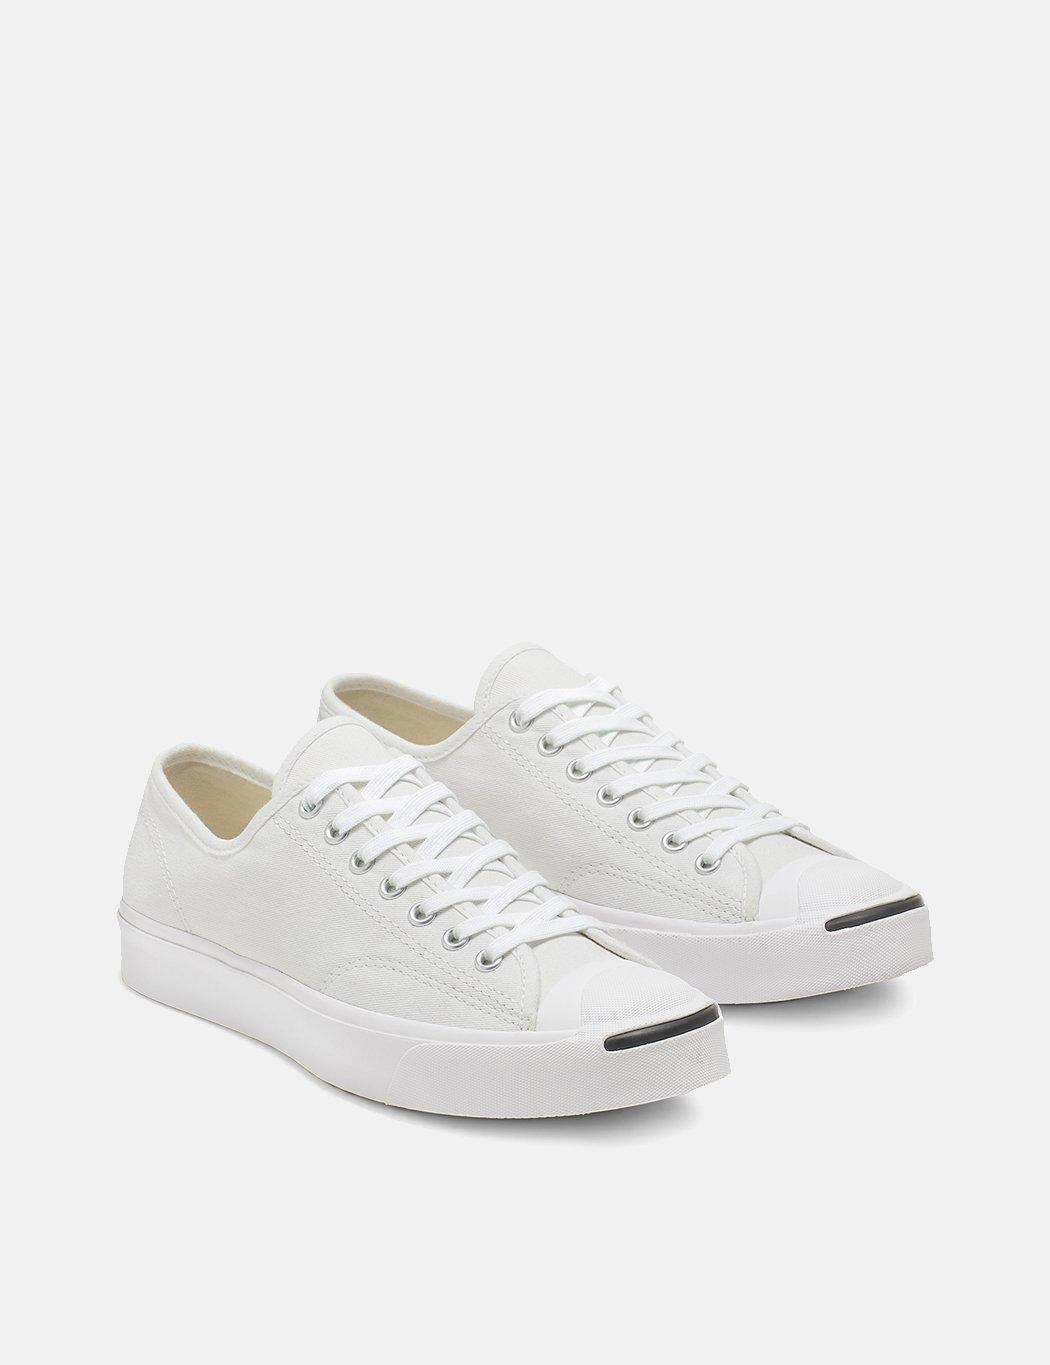 43f835d61631d4 Lyst - Converse Jack Purcell 164057c (canvas) in White for Men